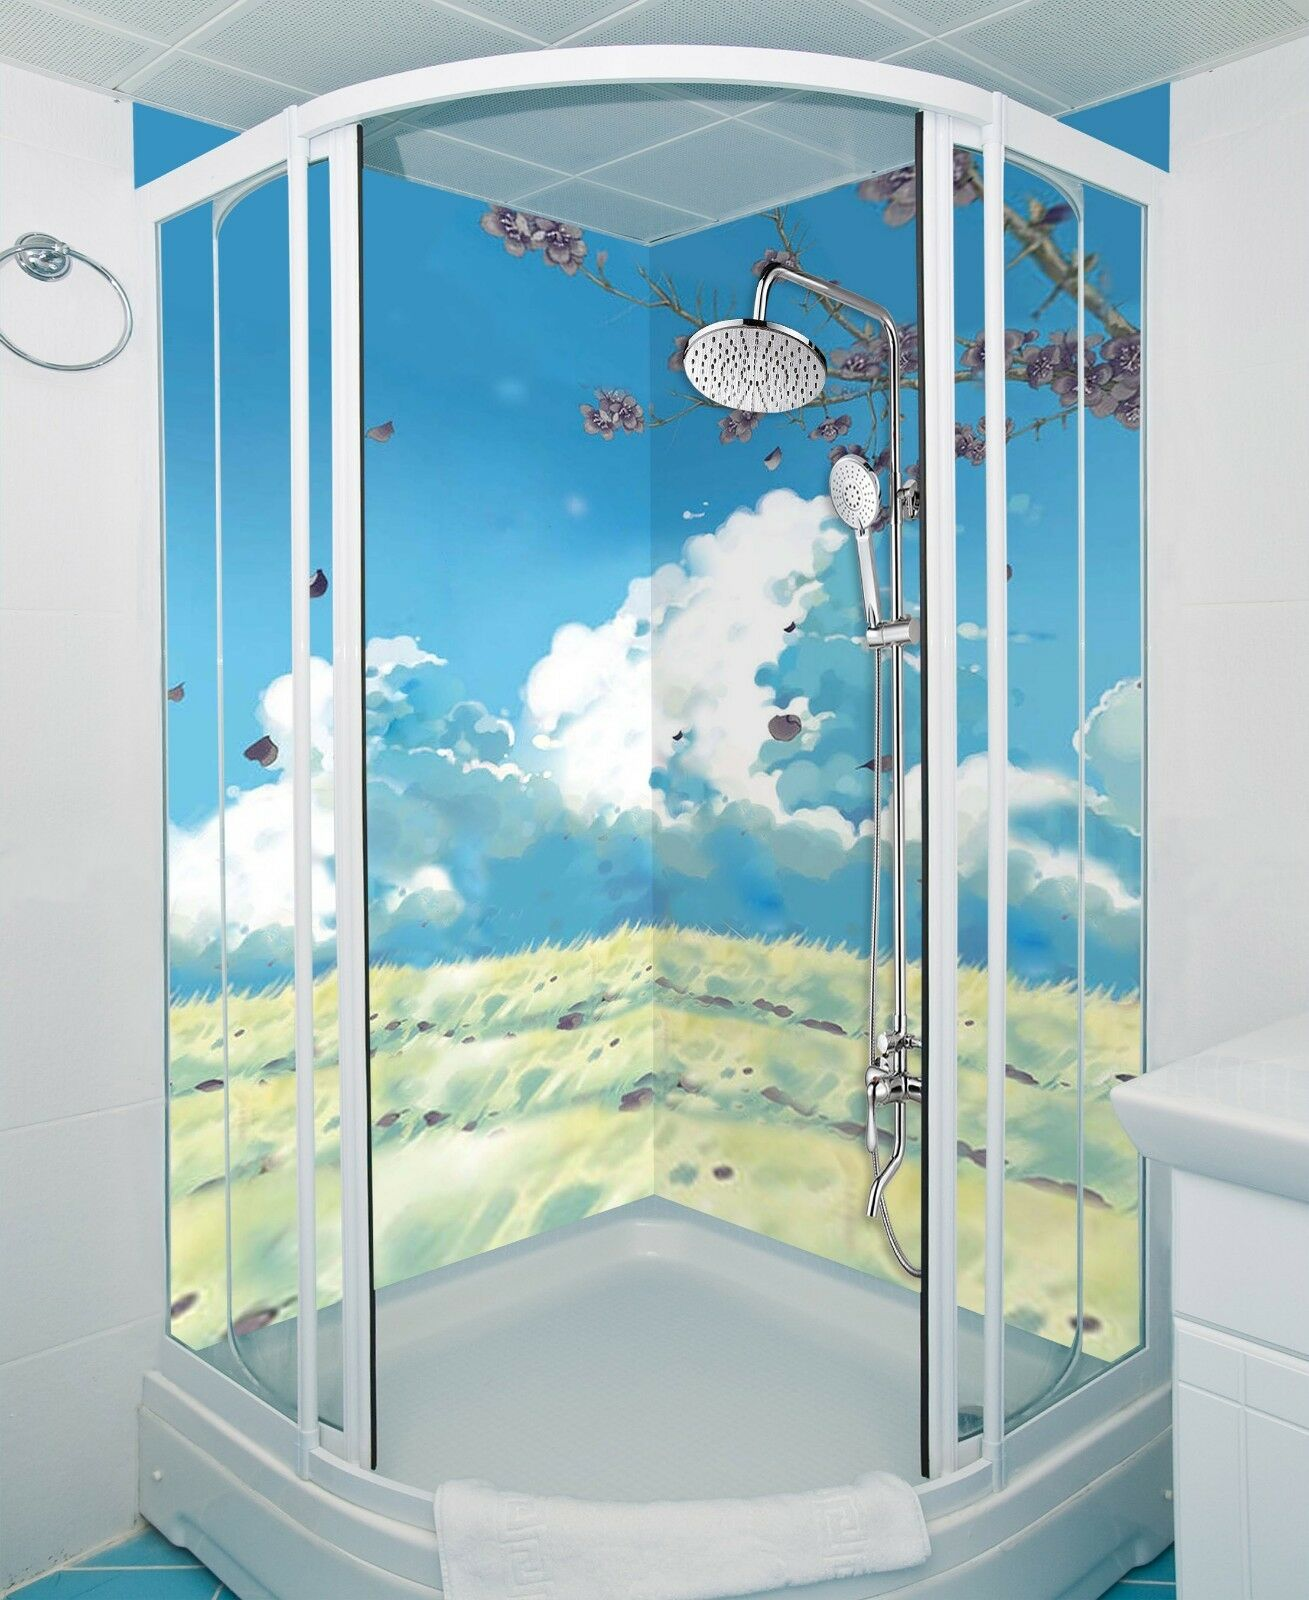 3D Sky Clouds Nature 7 WallPaper Bathroom Print Decal Wall Deco AJ WALL CA Carly